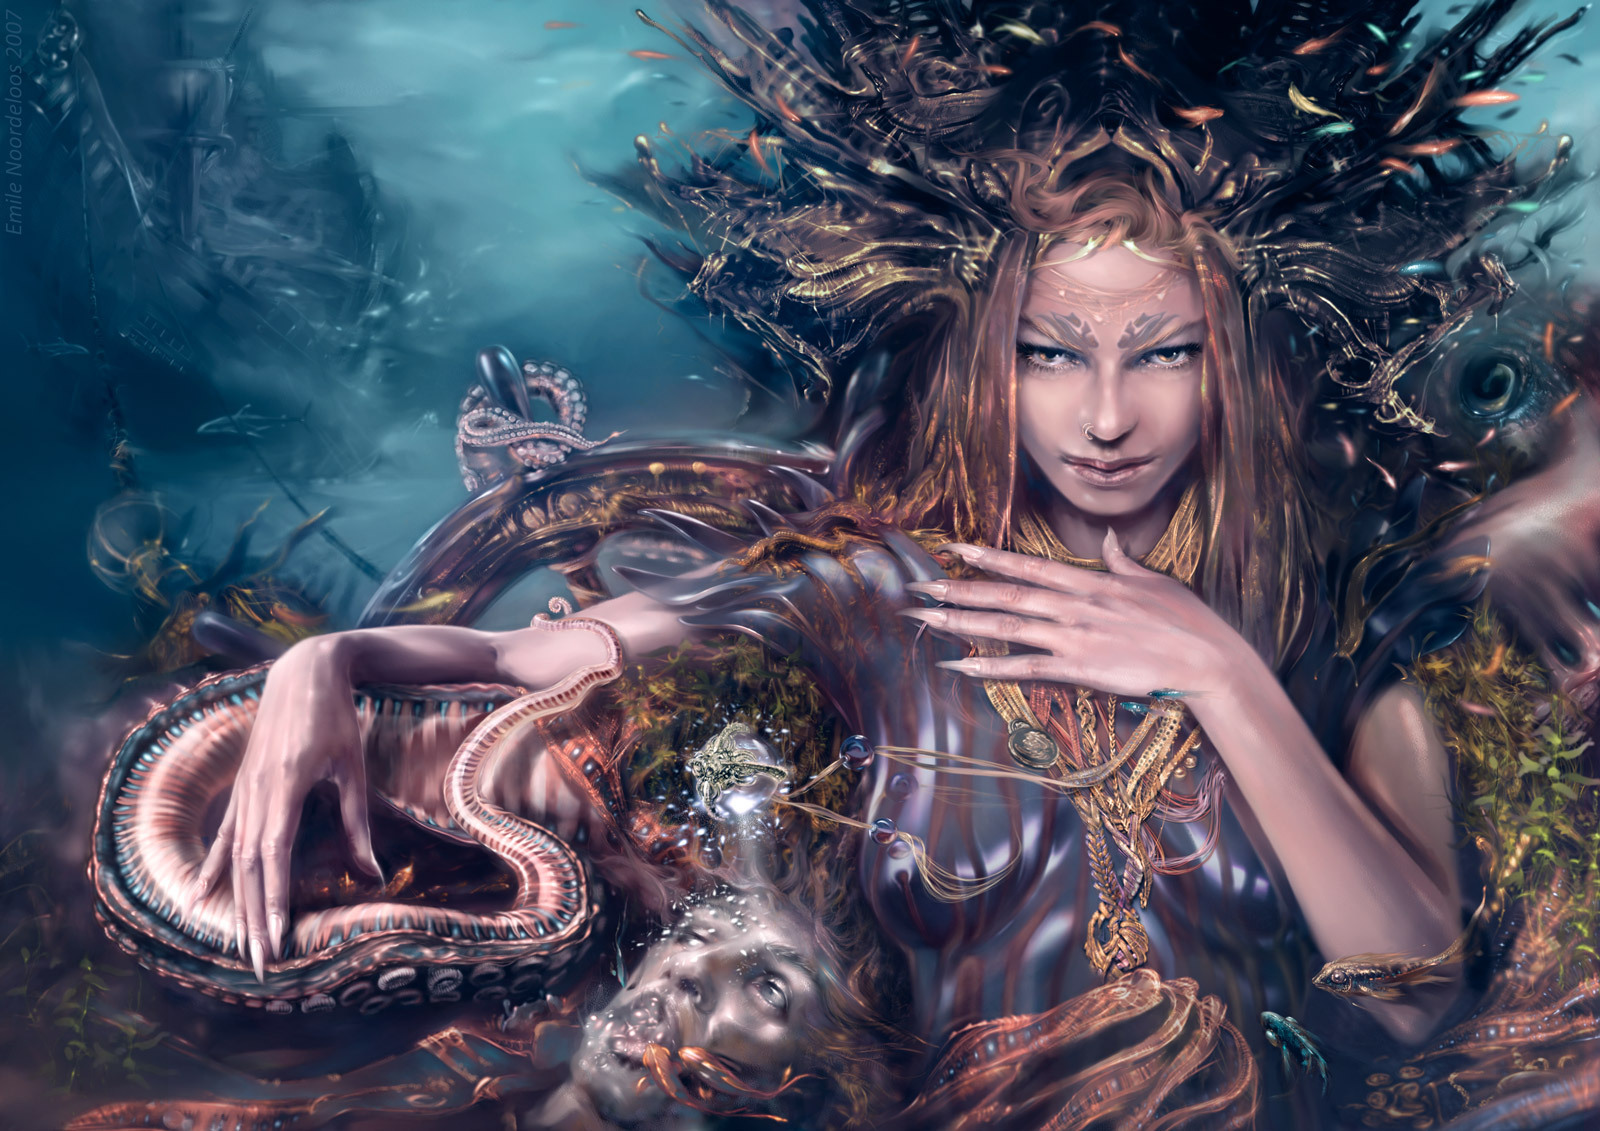 Siren - Emile Noordeloos - Fantasy Art Photo (6183501 ...